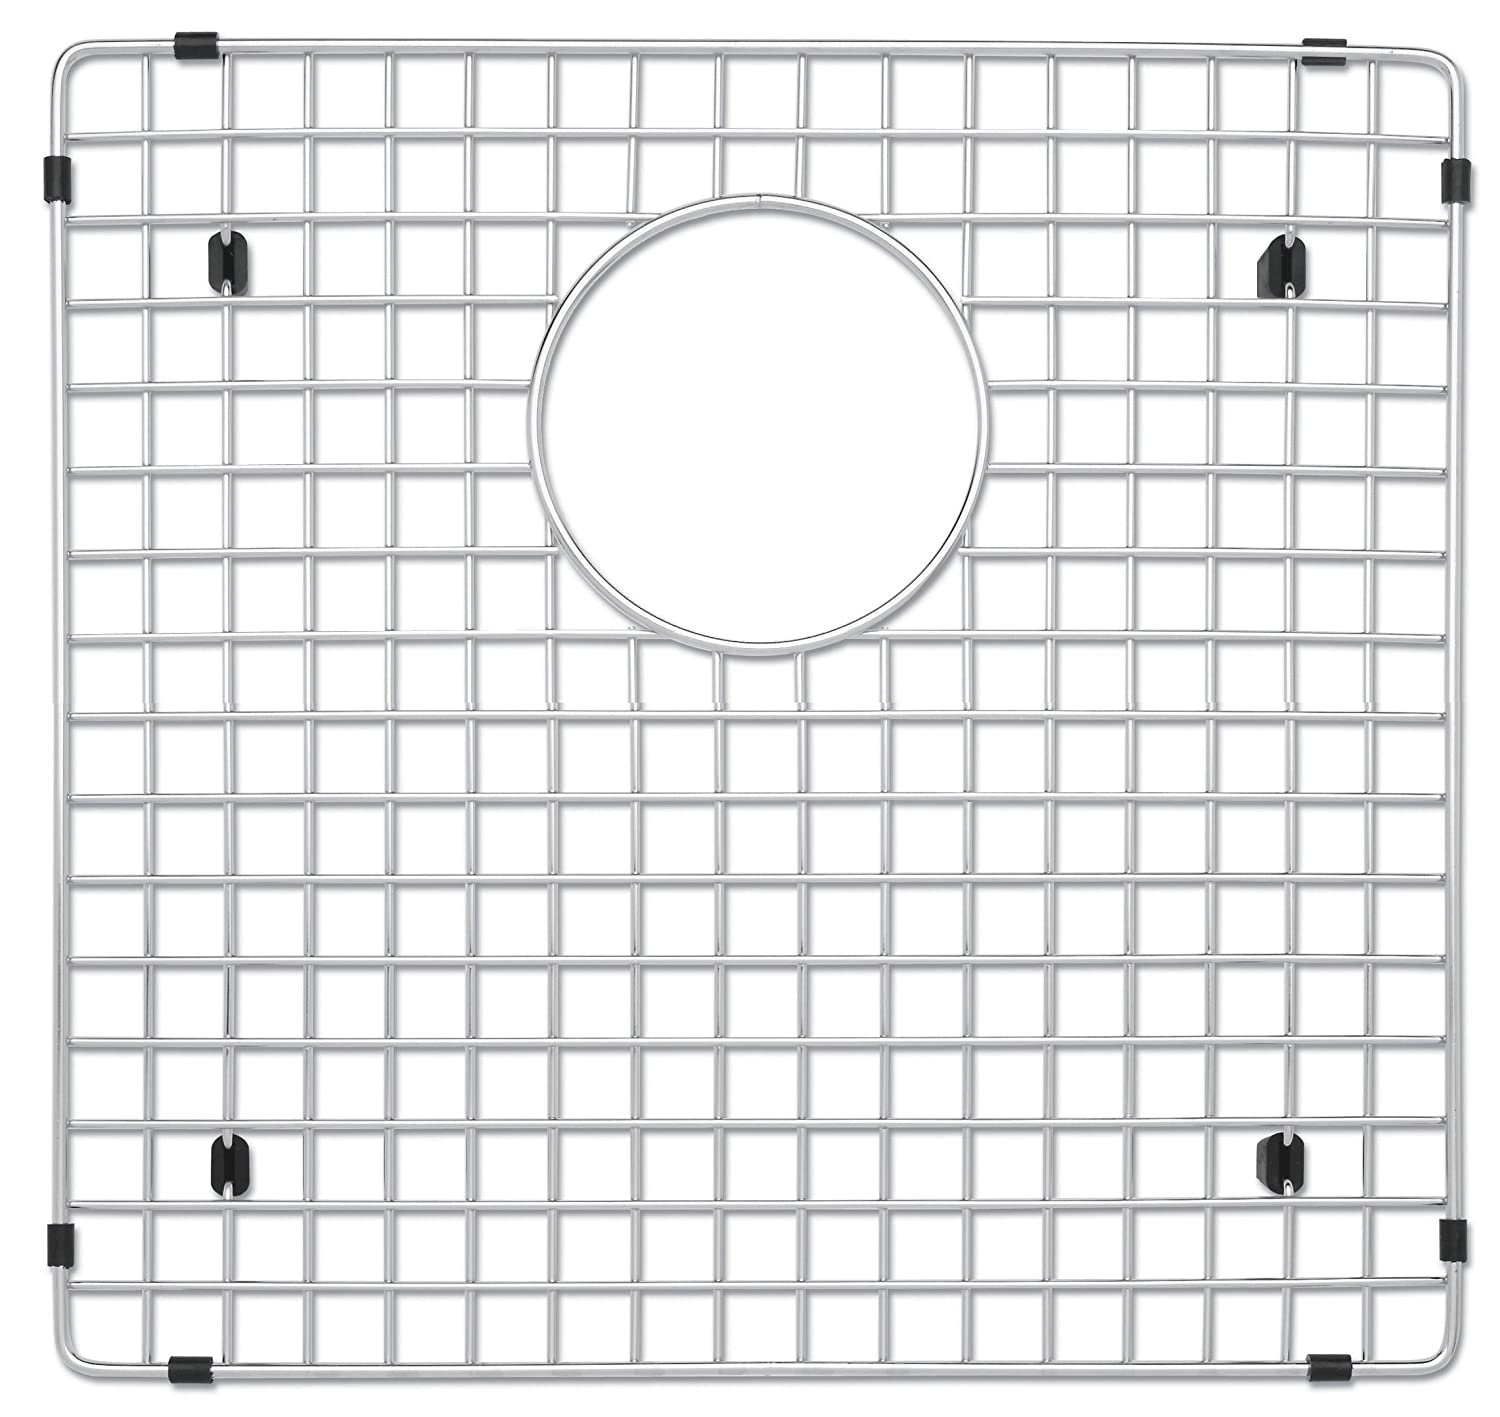 Fits Precision and Precision 10 1-3//4 Bowl left bowl Blanco 223190 Stainless Steel Sink Grid Stainless Steel